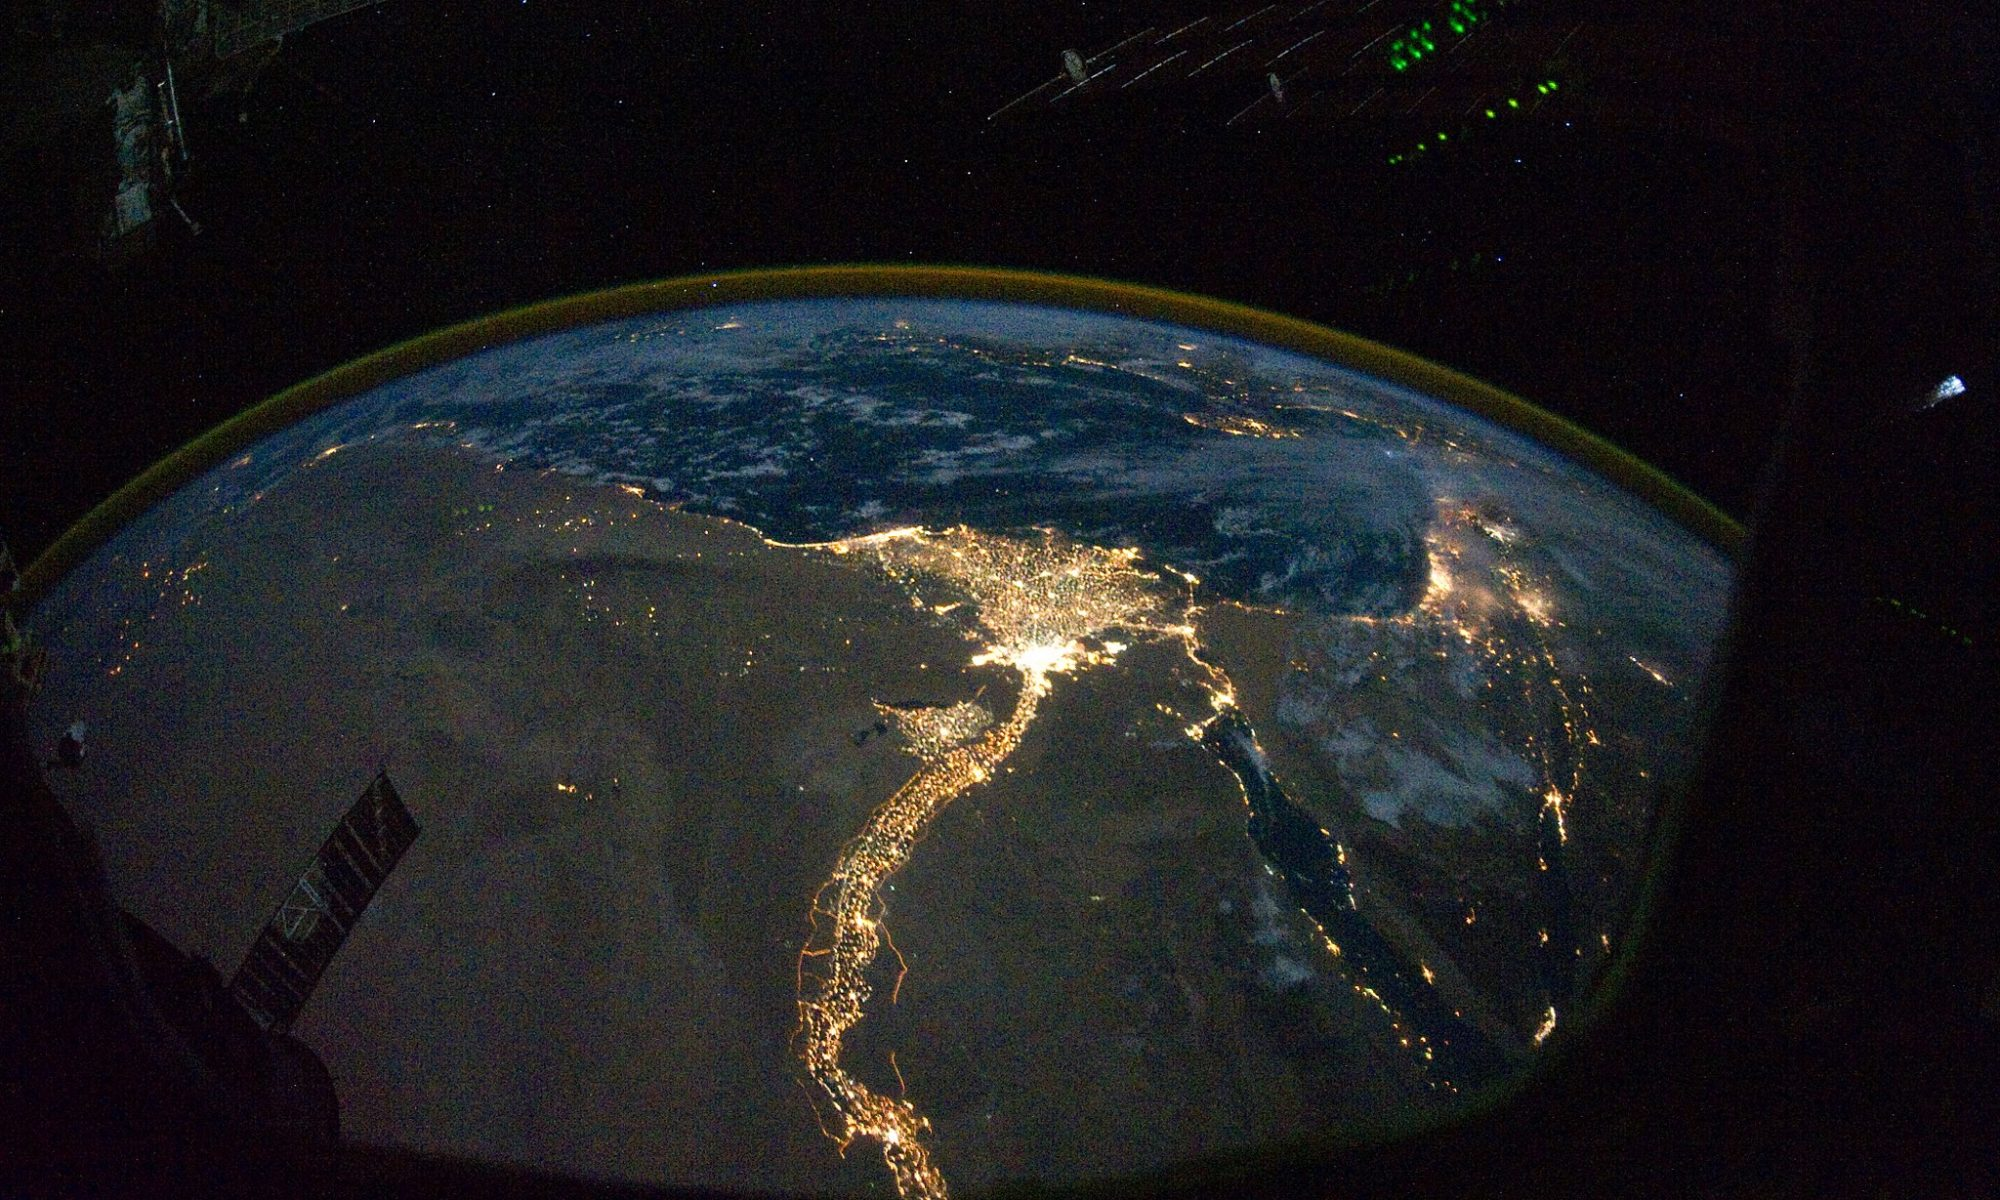 Satelite image of the Eart at night, showing the Nile illuminated by the electric light of cities and roads